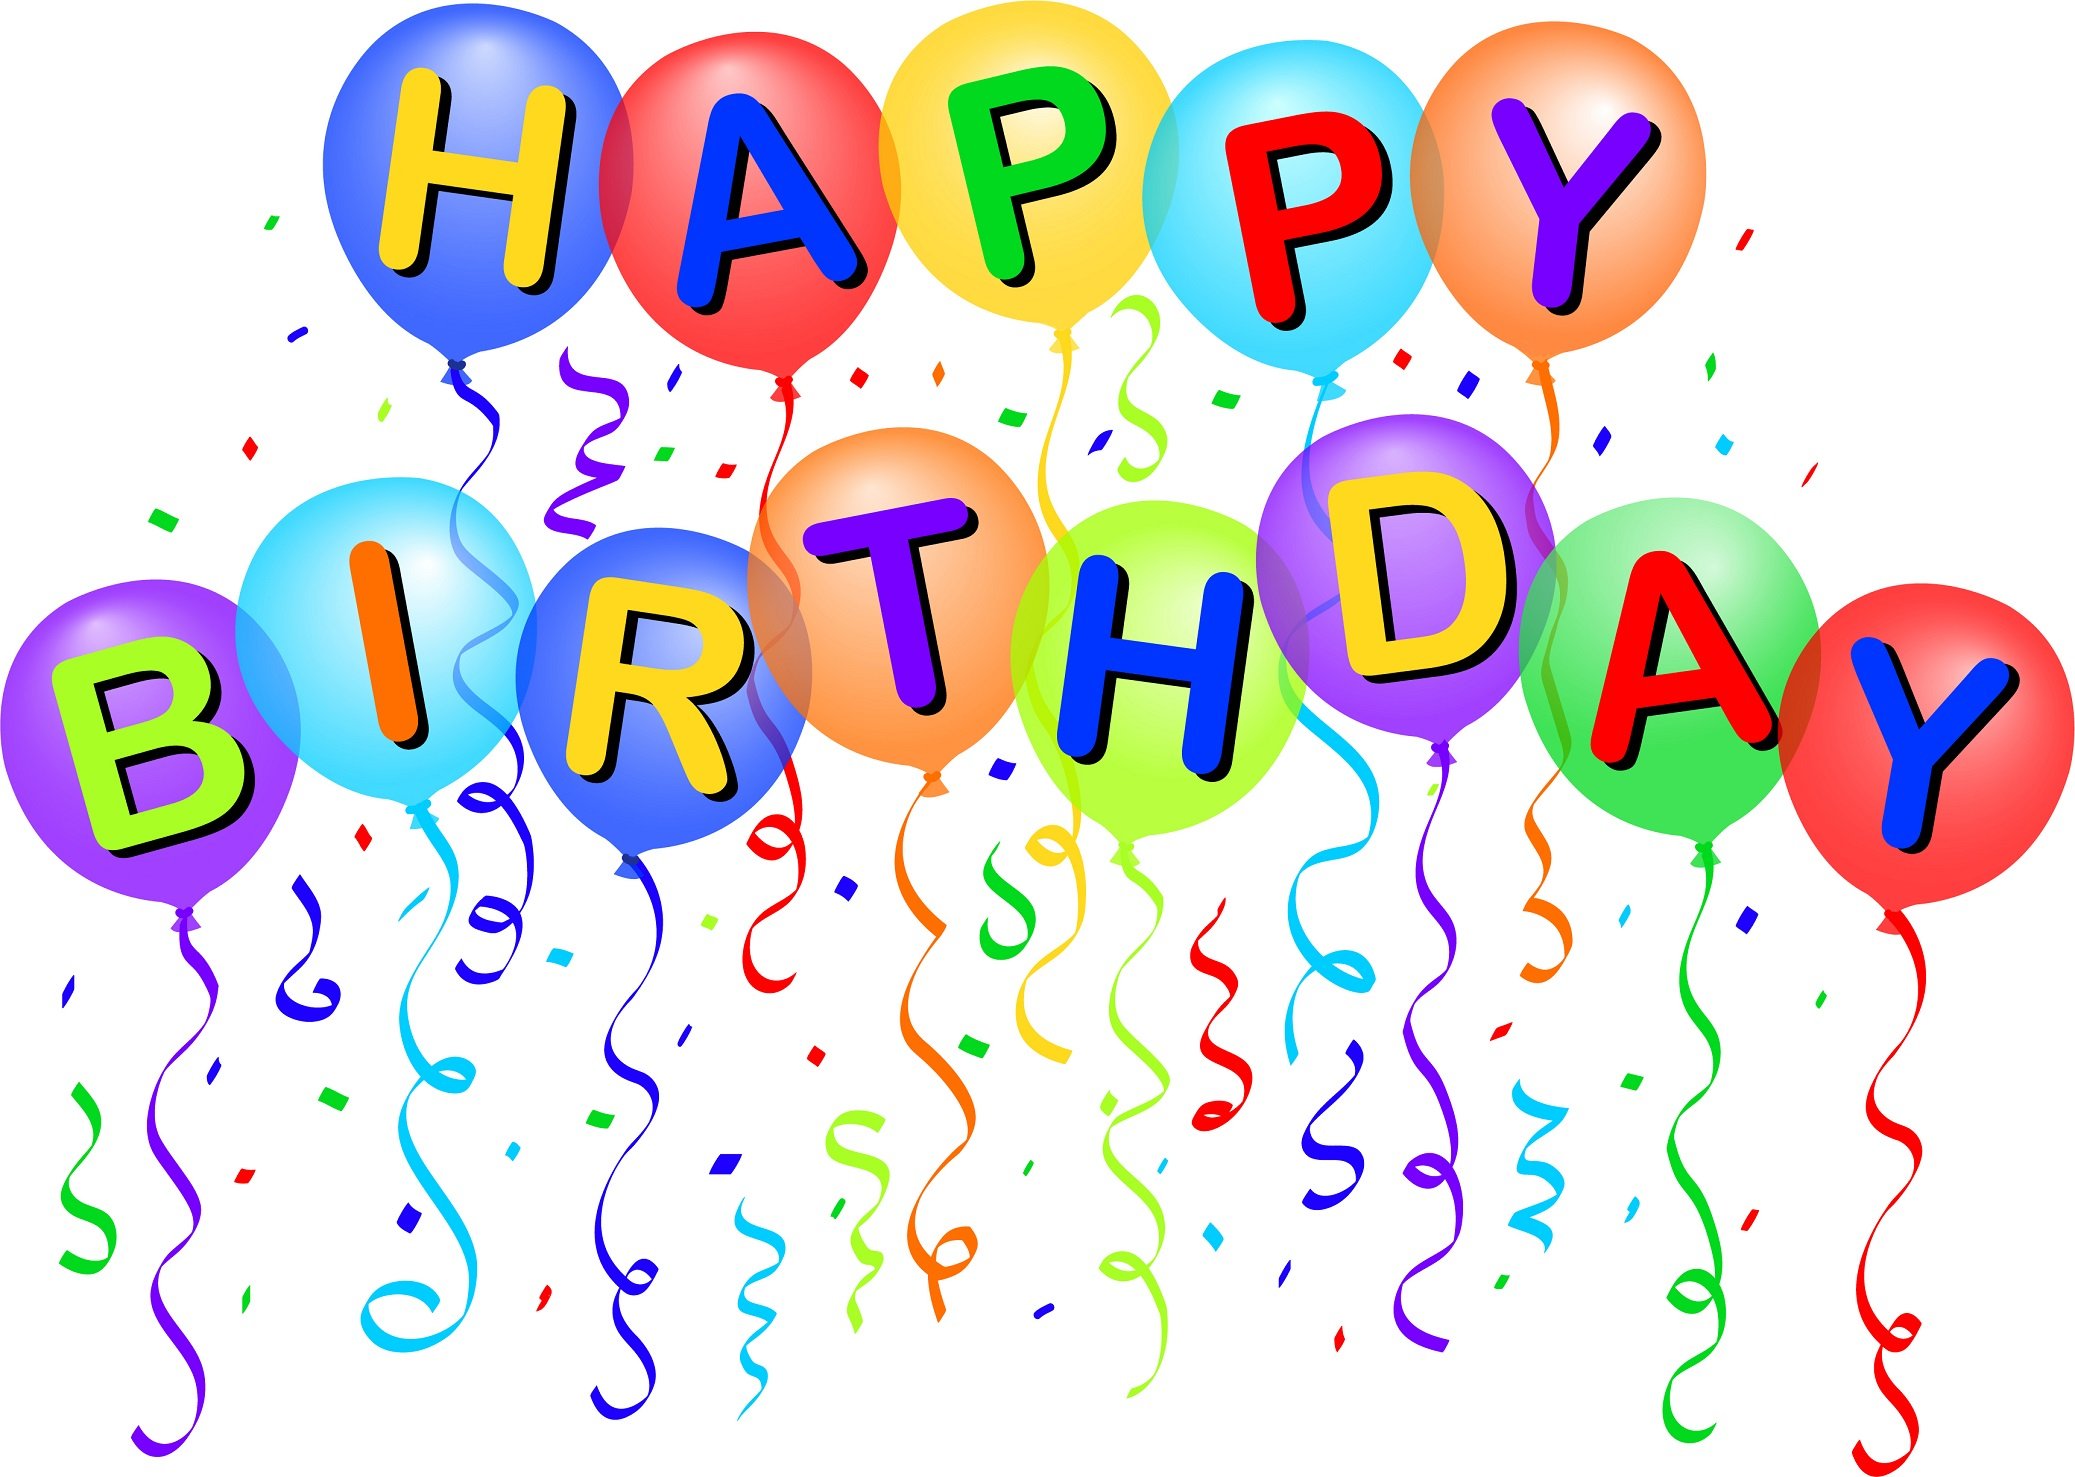 Happy Birthday Songs | End Online || 106.5 The End